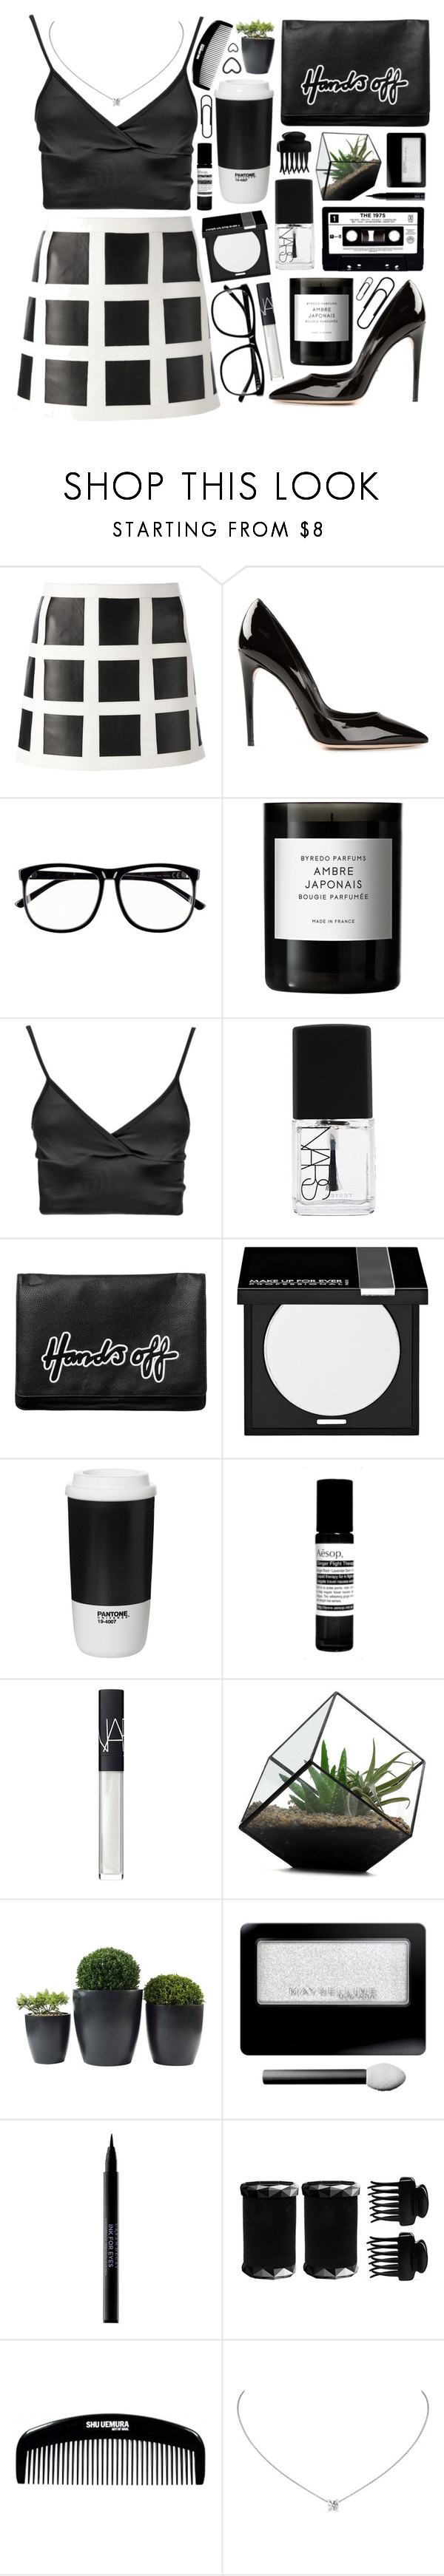 """""""Outfit 196"""" by holass ❤ liked on Polyvore featuring Dsquared2, Dolce&Gabbana, H&M, Byredo, Boohoo, NARS Cosmetics, Monki, MAKE UP FOR EVER, ROOM COPENHAGEN and Aesop"""